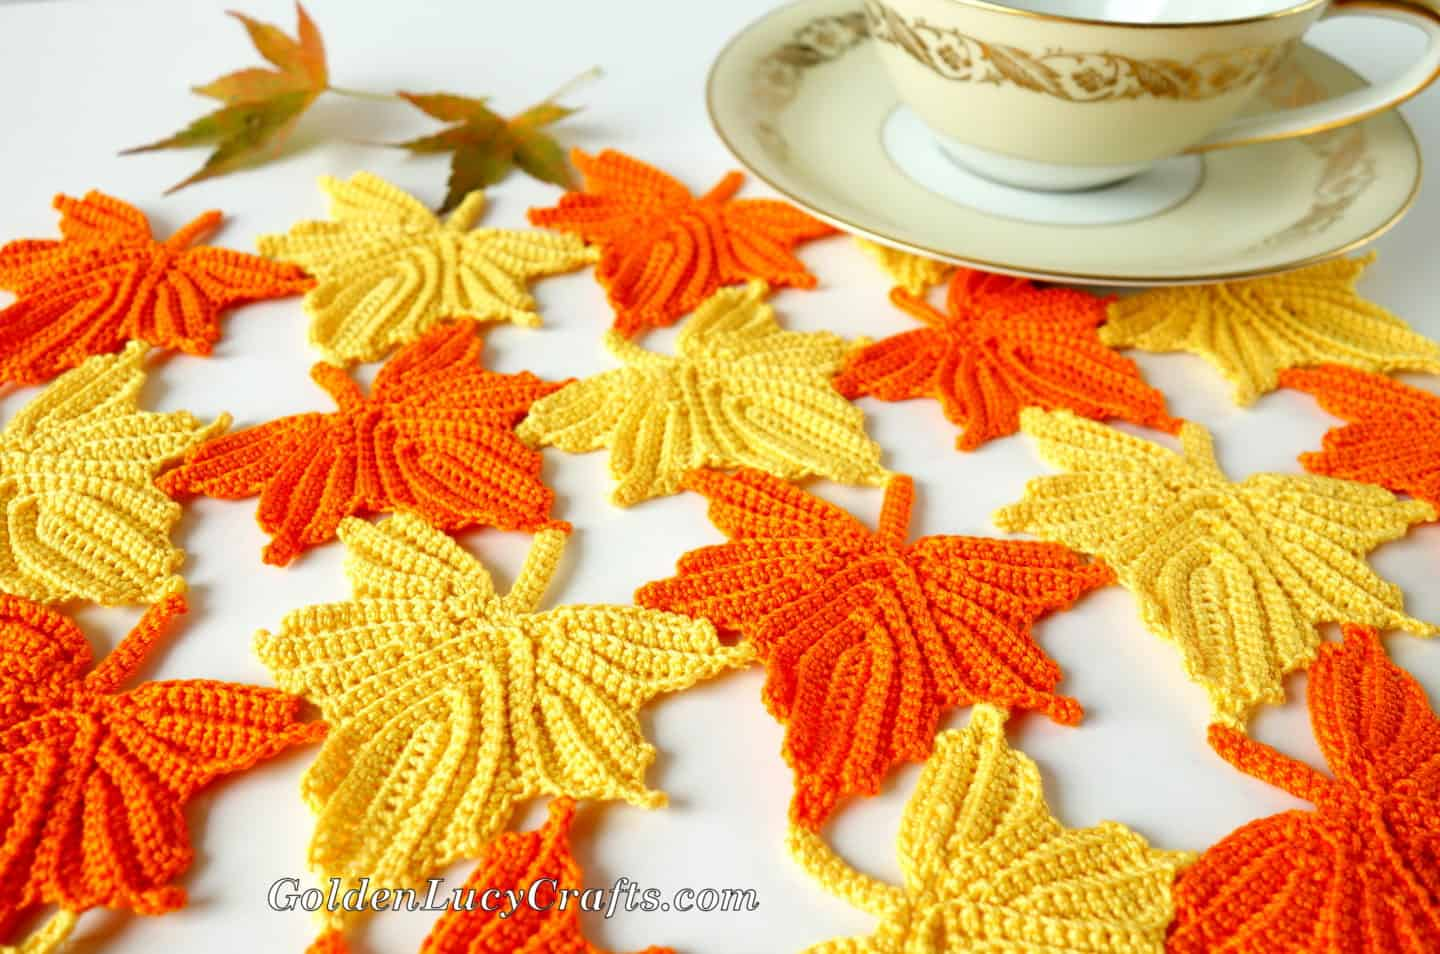 Thanksgiving Archives - GoldenLucyCrafts